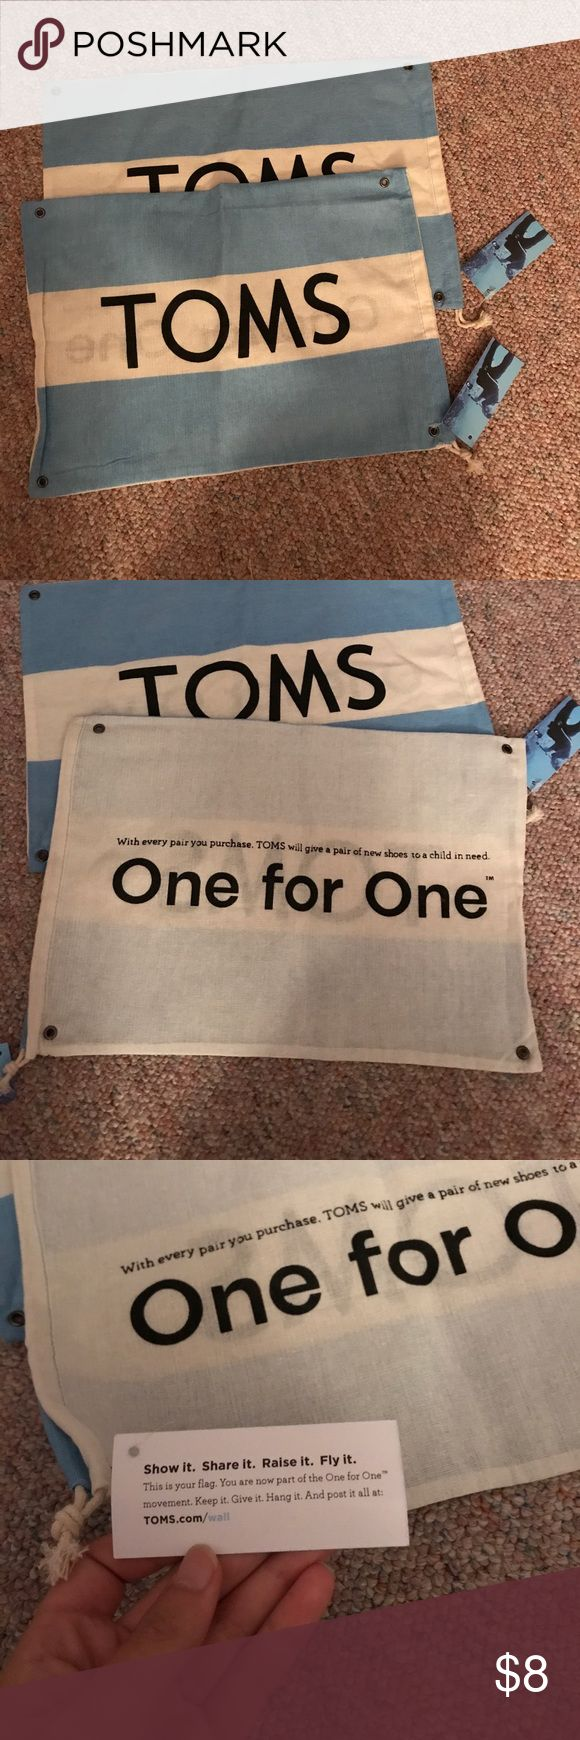 2 TOMS one for one flags/shoe bags! NWT 2 TOMS one for one flags/shoe bags! NWT. TOMS Other